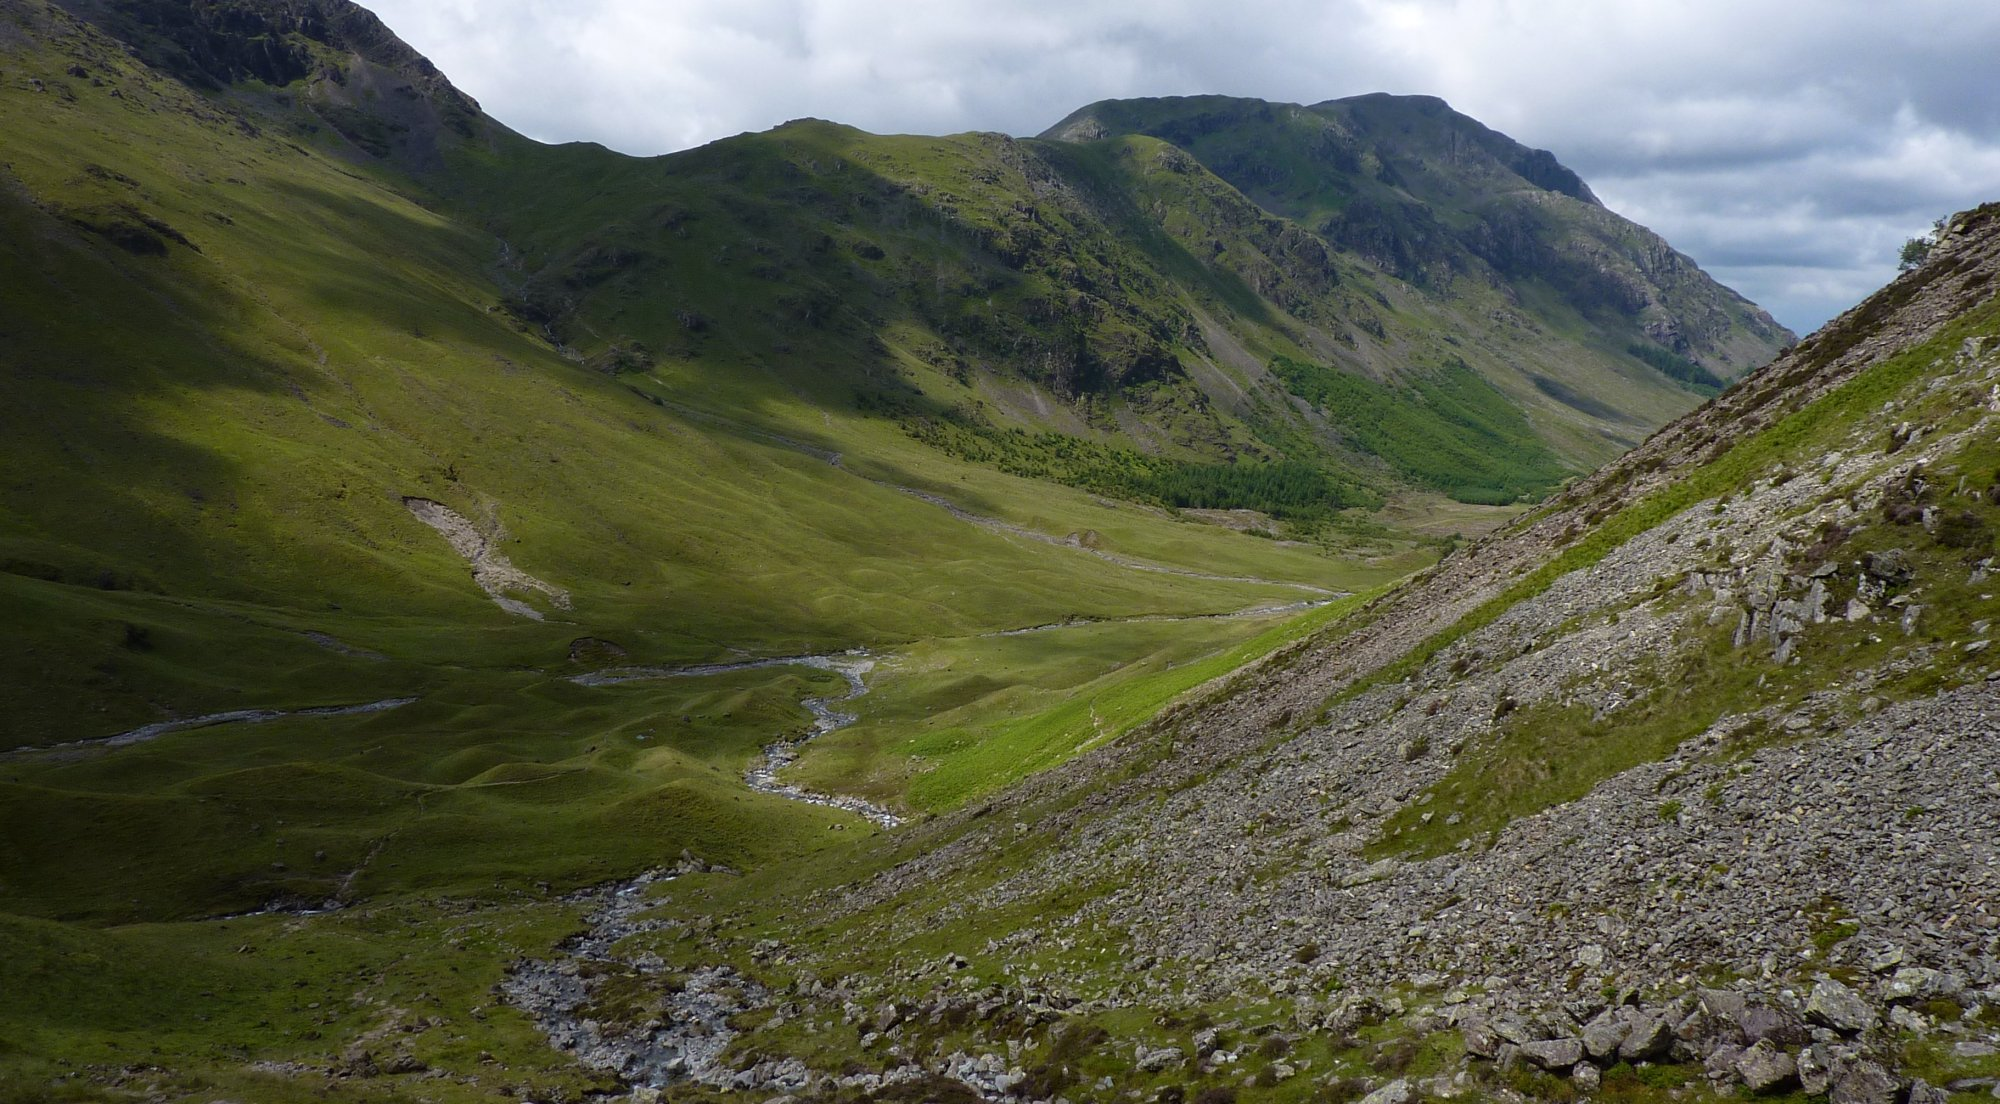 At the foot of Loft Beck, looking along Ennerdale